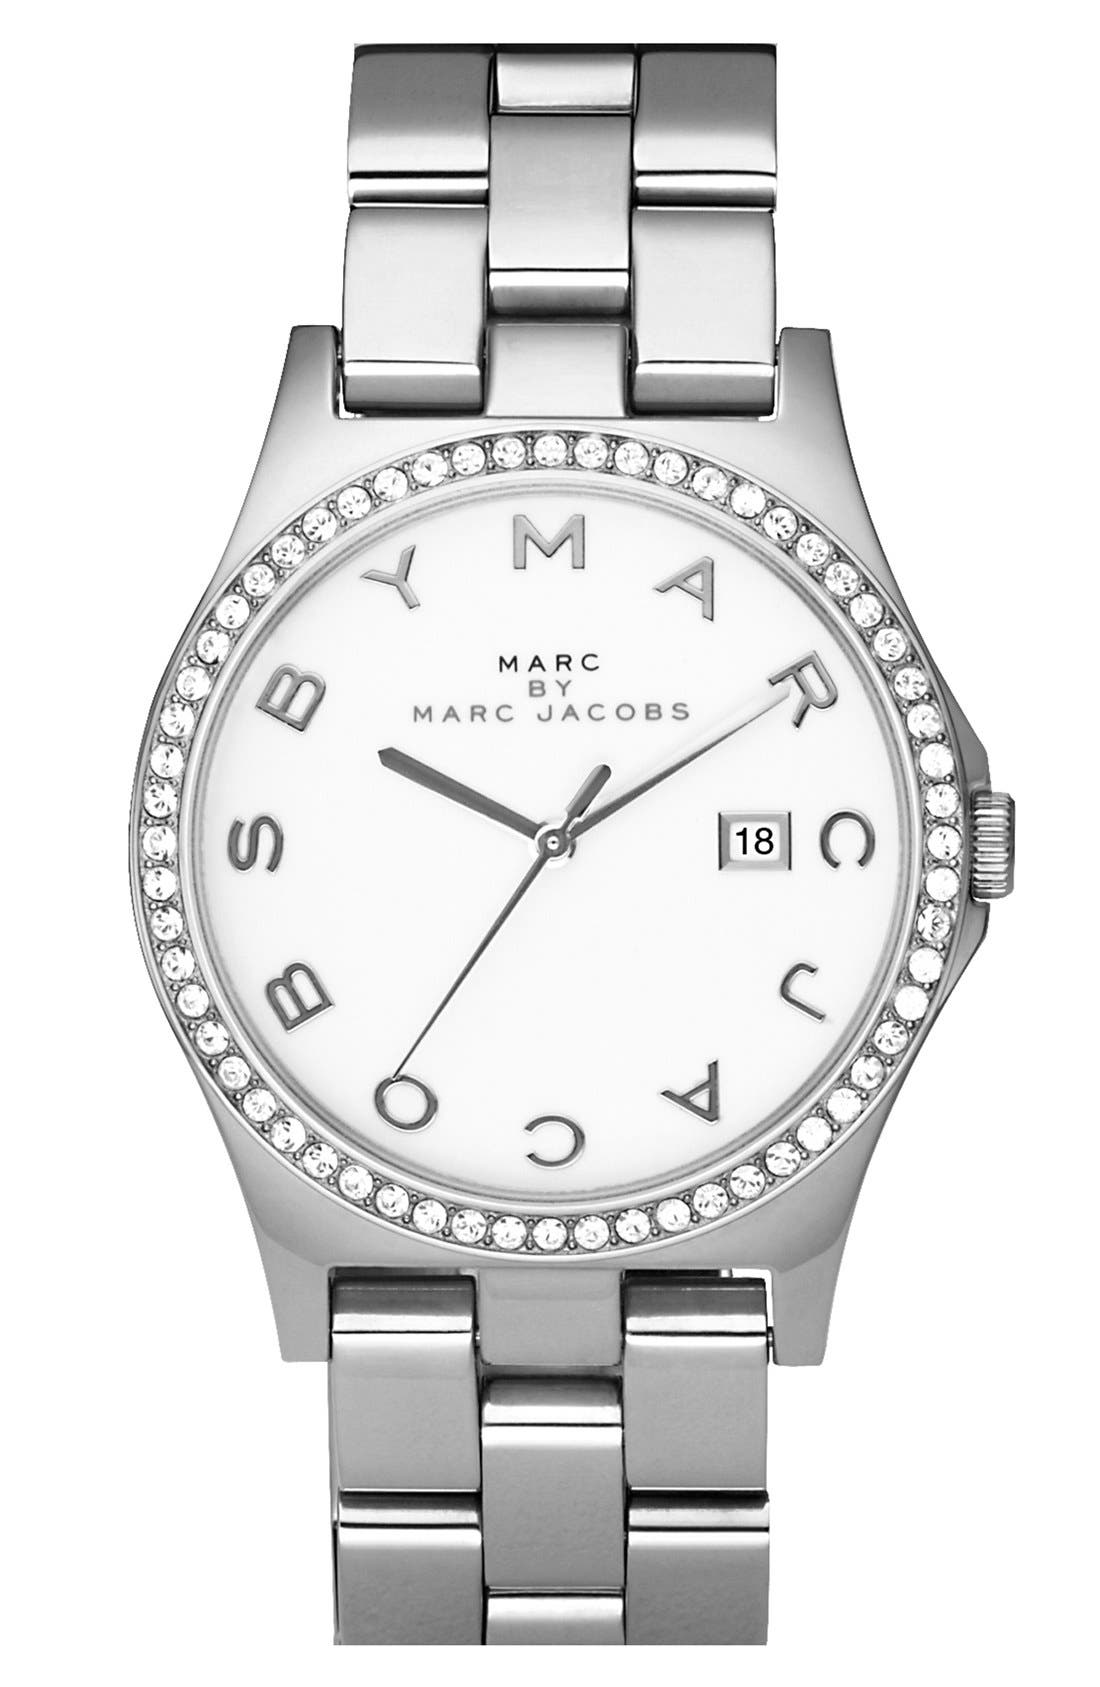 Alternate Image 1 Selected - MARC JACOBS 'Henry' Stainless Steel Watch